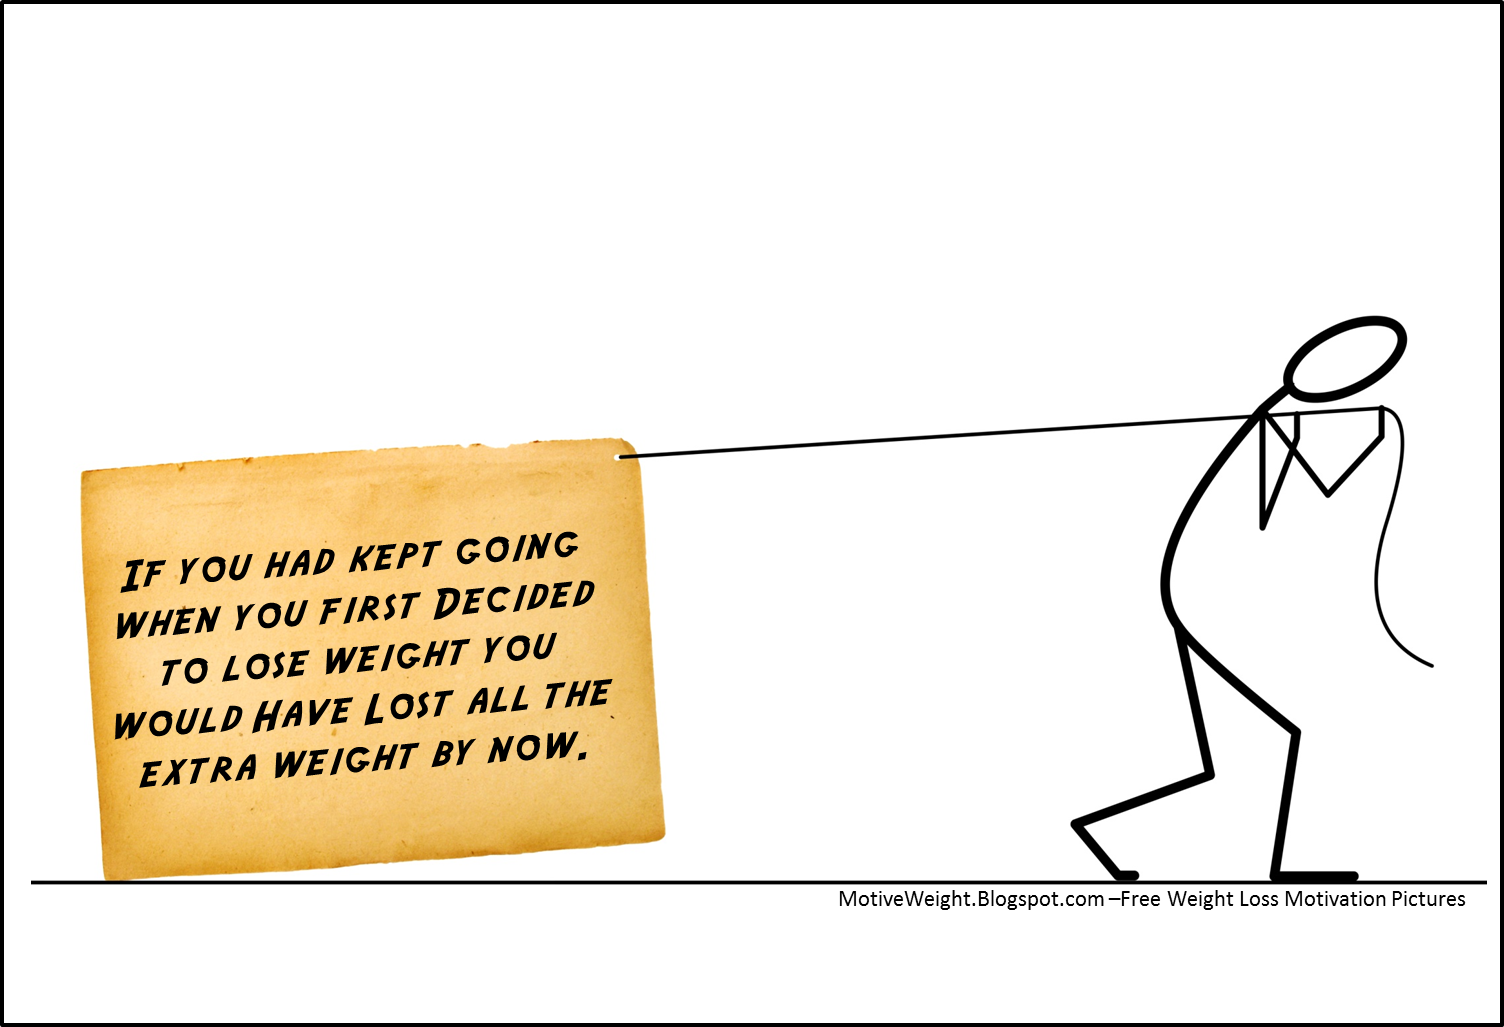 ... : If you had kept going when you first decided to lose weight